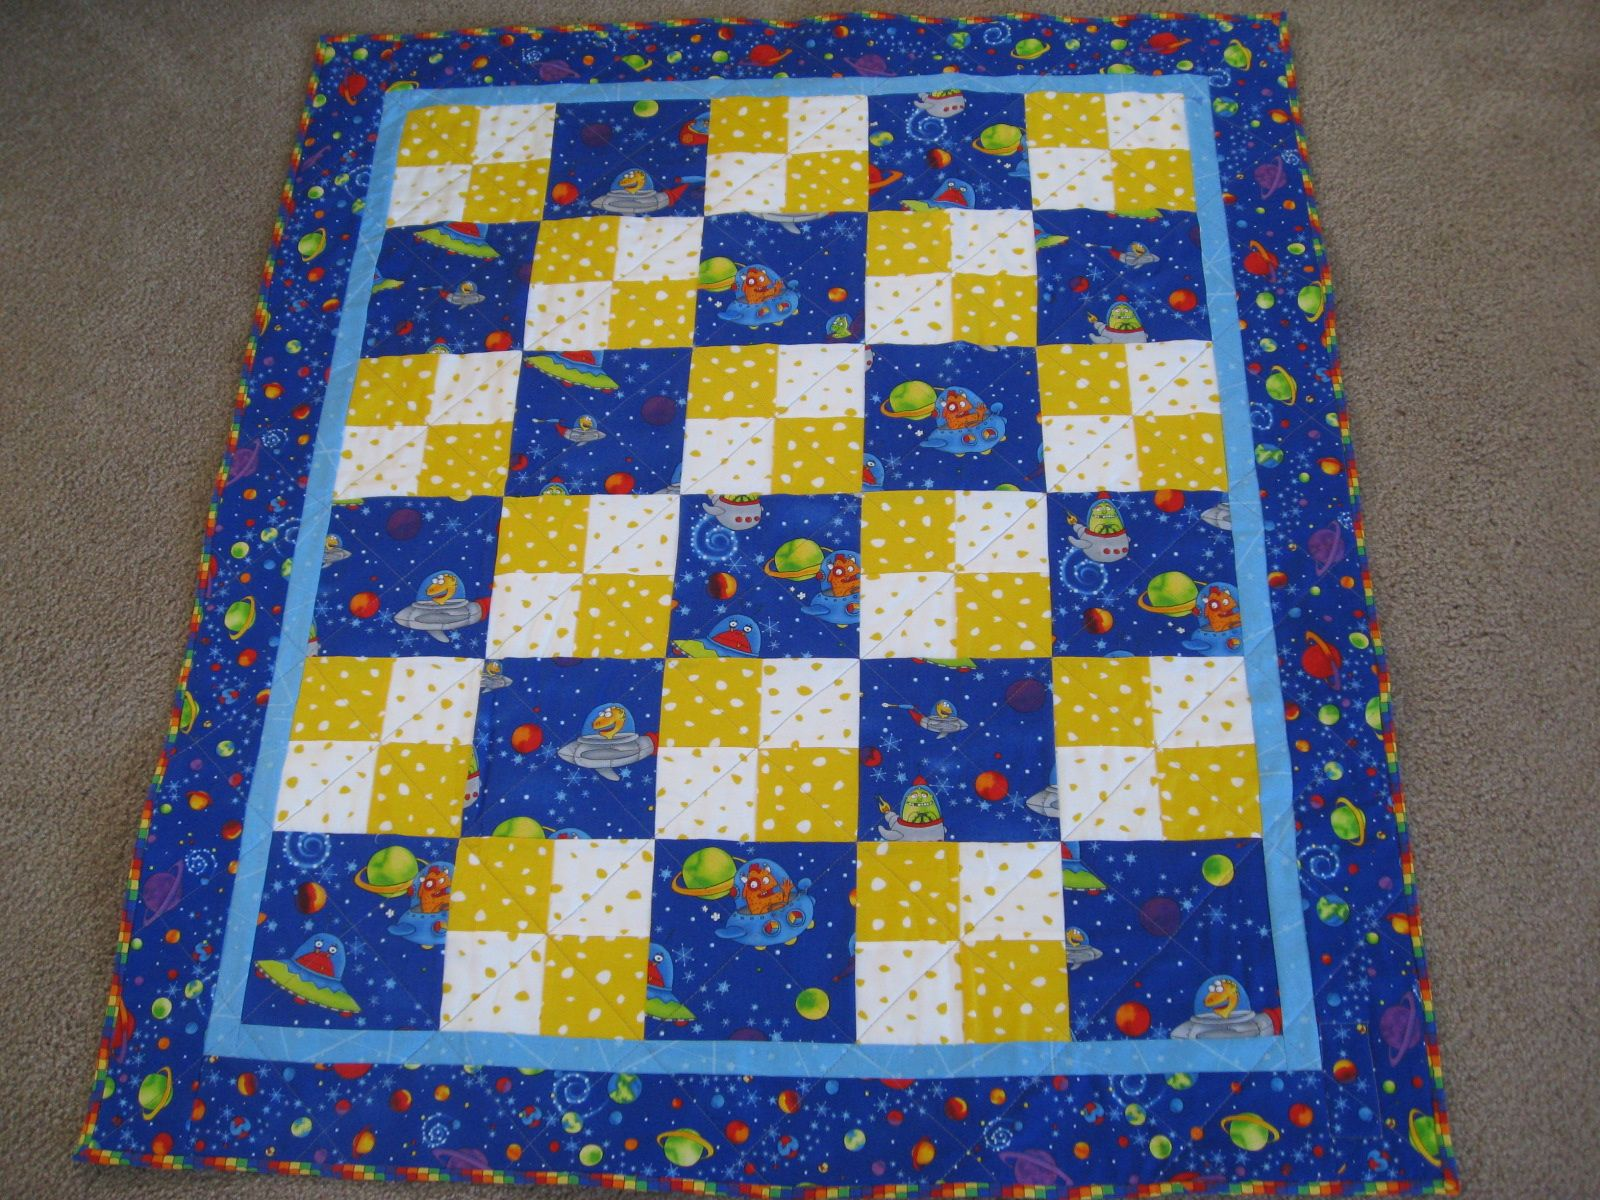 2009 Finished Quilts – Stitching Circle : quilting with kids - Adamdwight.com